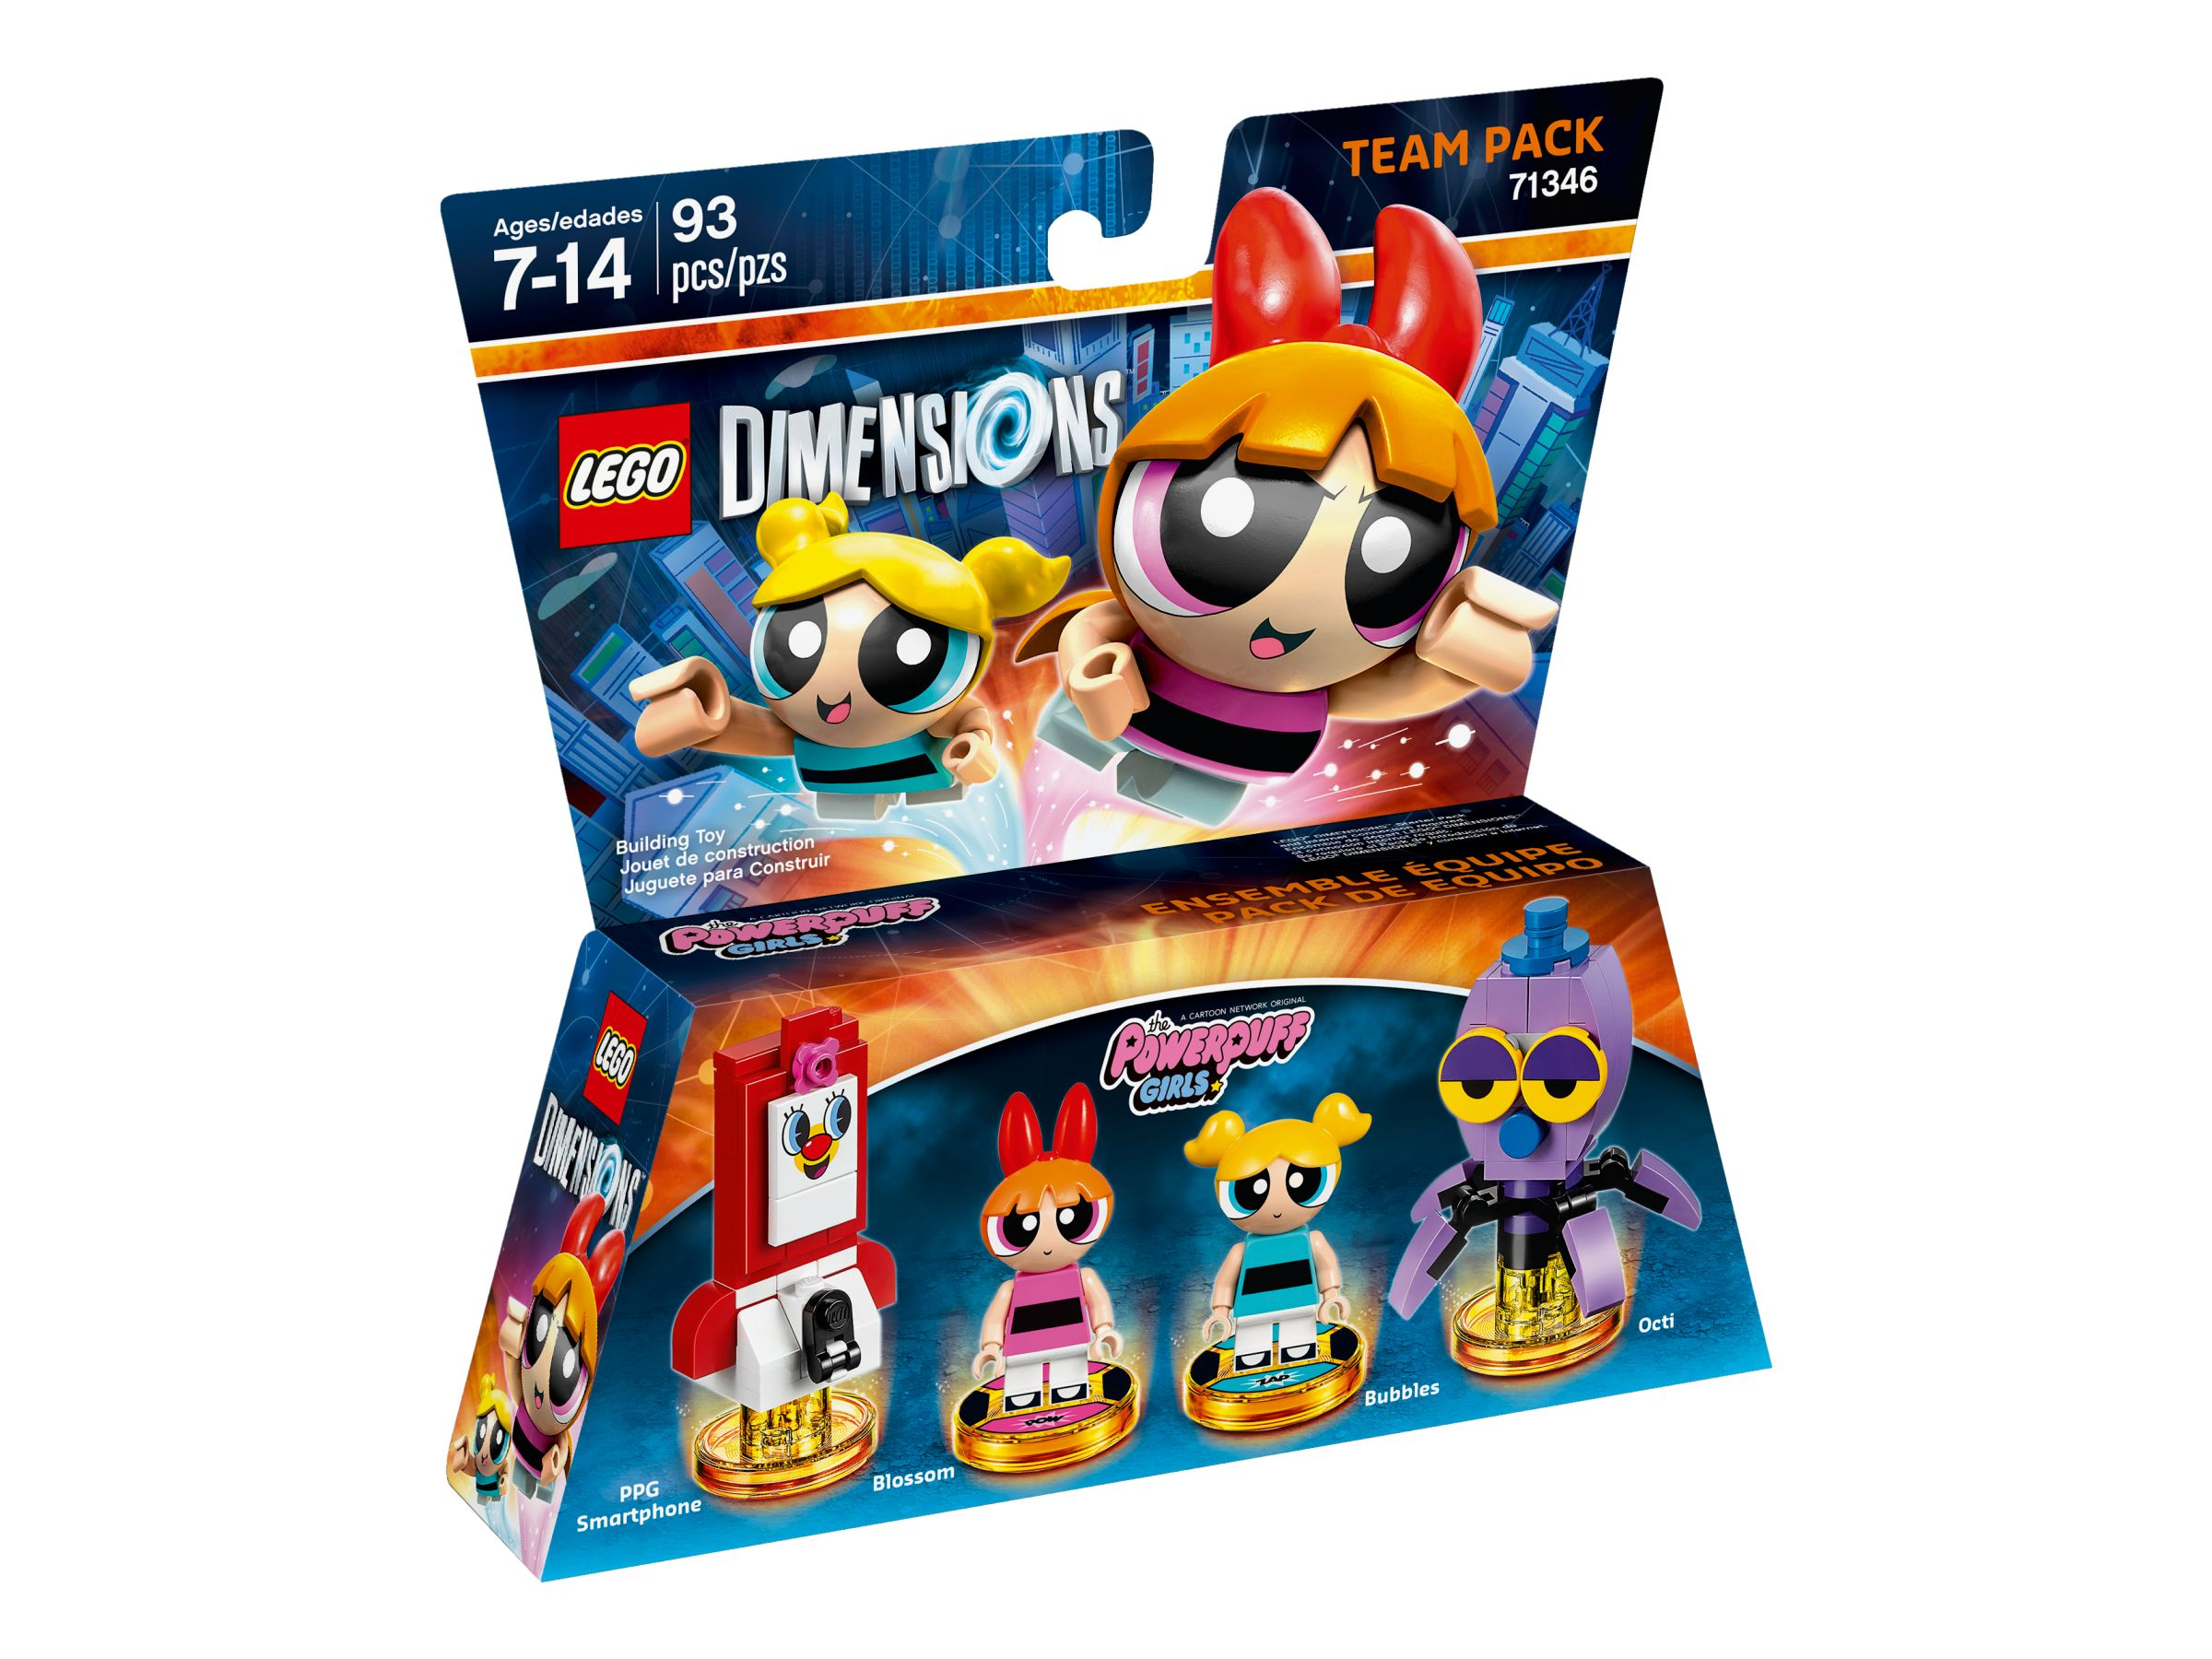 LEGO Dimensions 71346 The Powerpuff Girls™ Team-Pack LEGO_71346_alt1.jpg